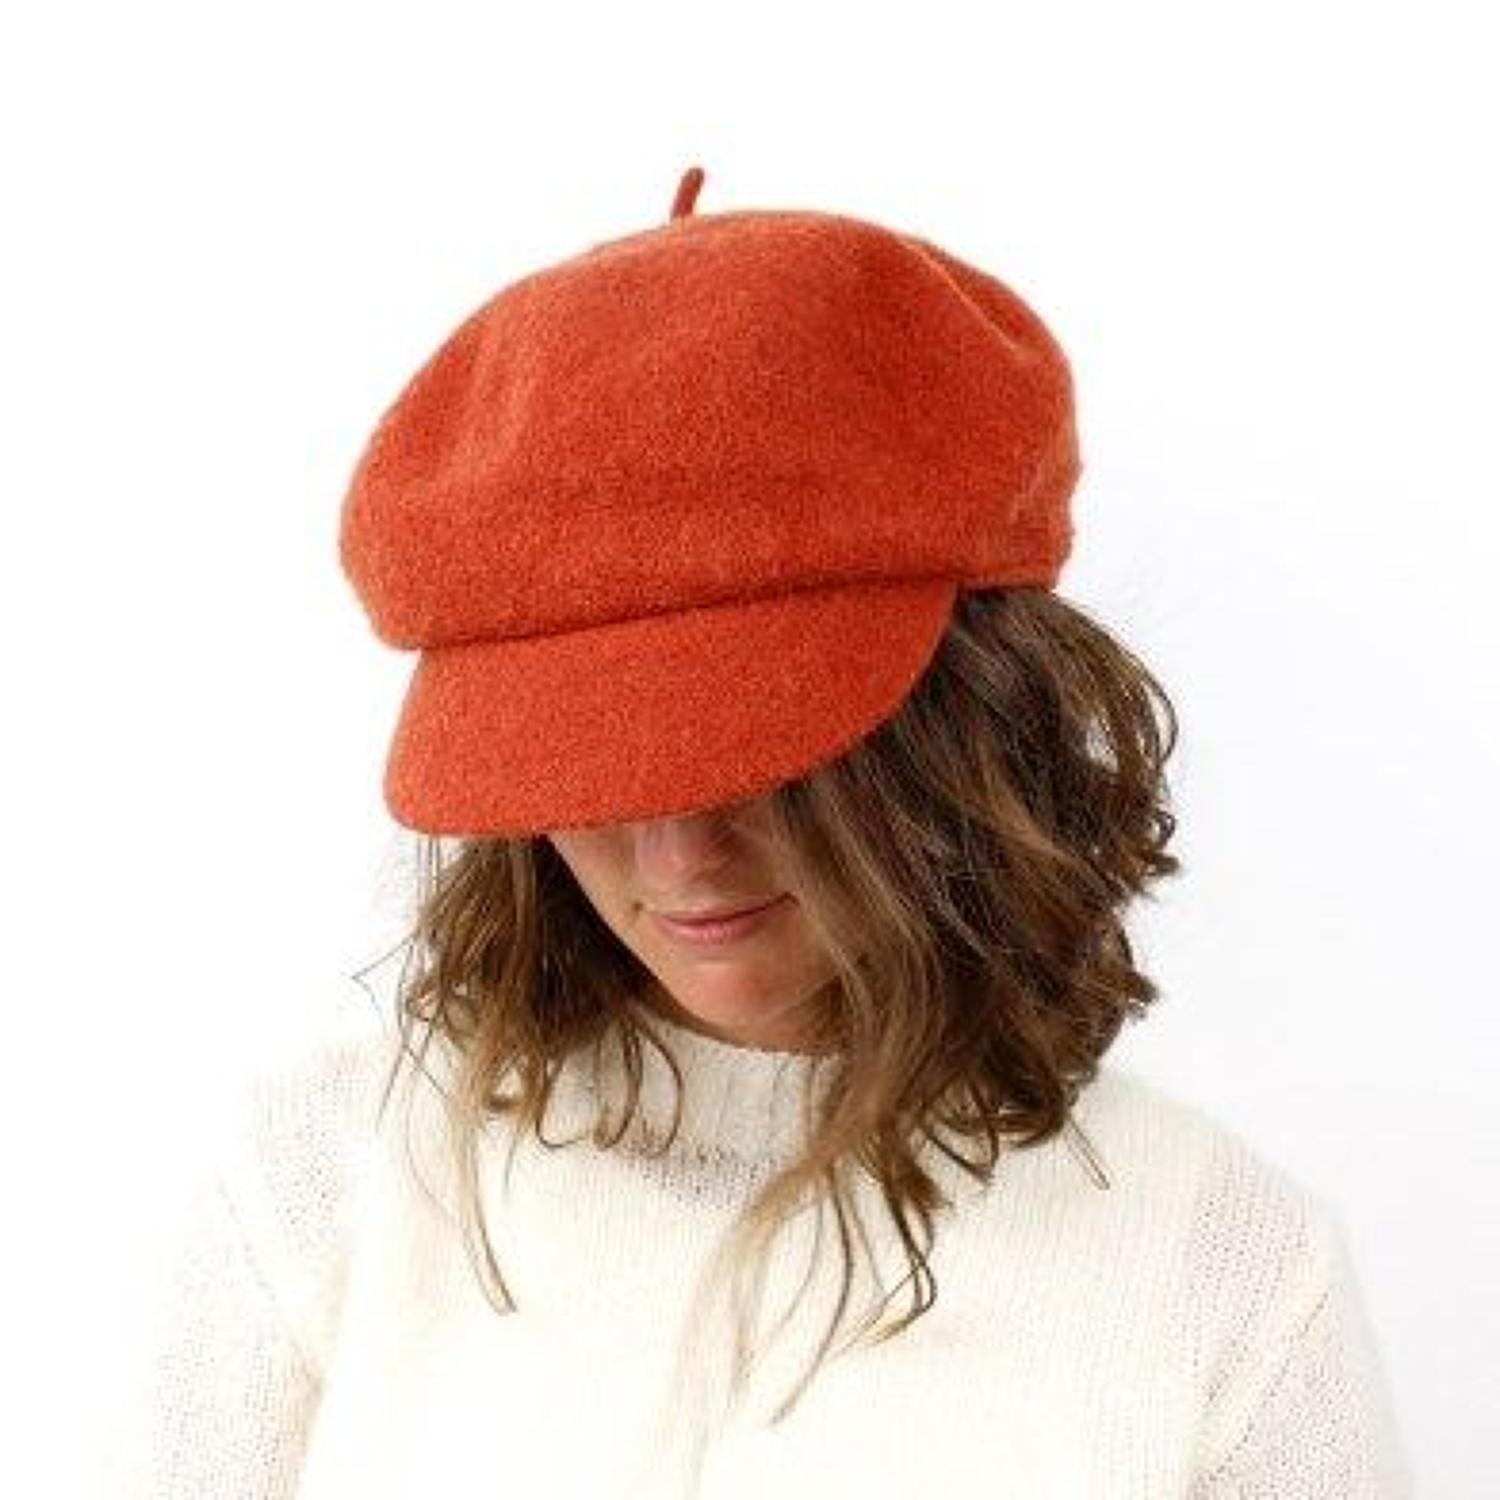 POM - Burnt orange wool Baker boy hat - One size